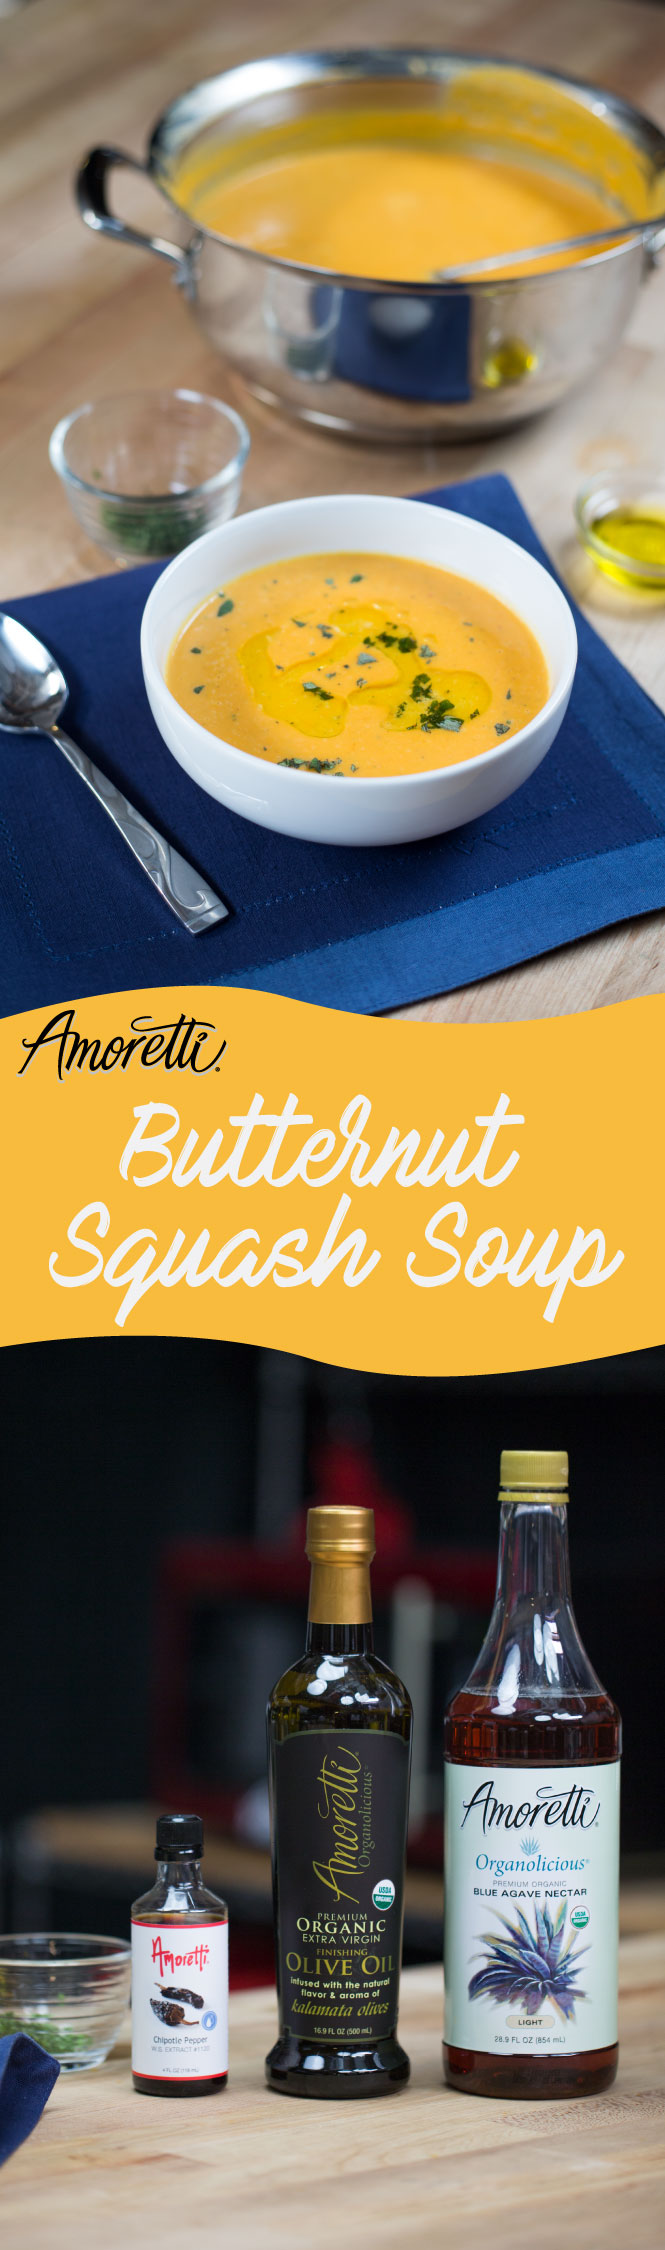 Butternut Squash Soup is the perfect meal to keep you warm! Its creamy texture and savory taste make it worth staying in.